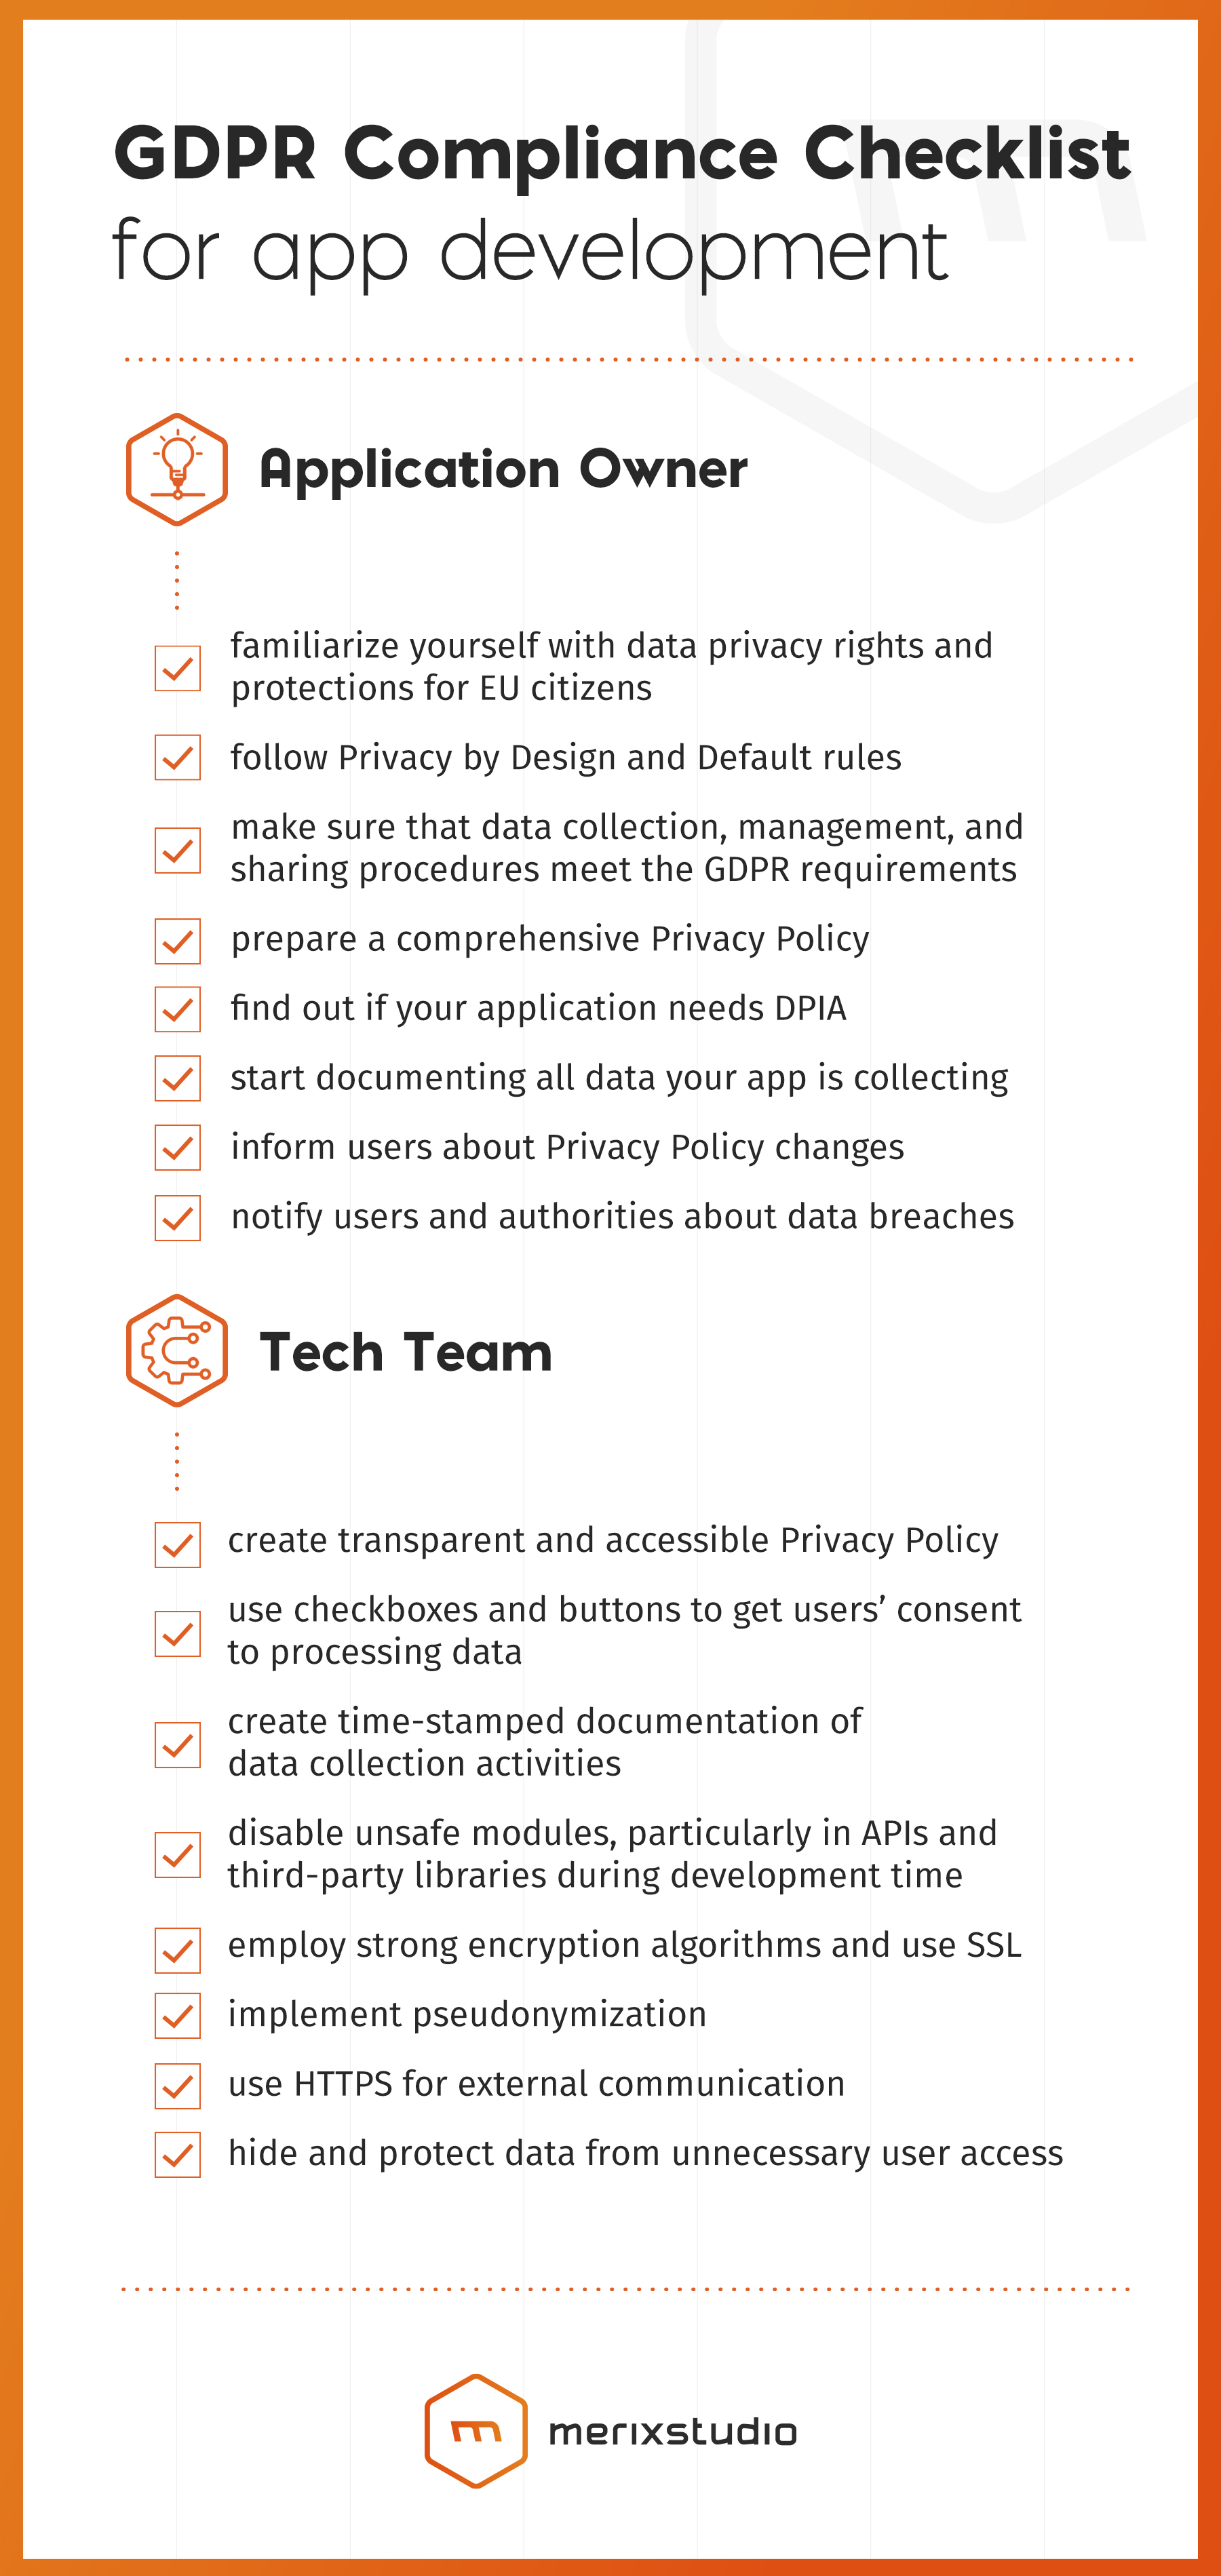 GDPR compliance checklist for software development | Merixstudio